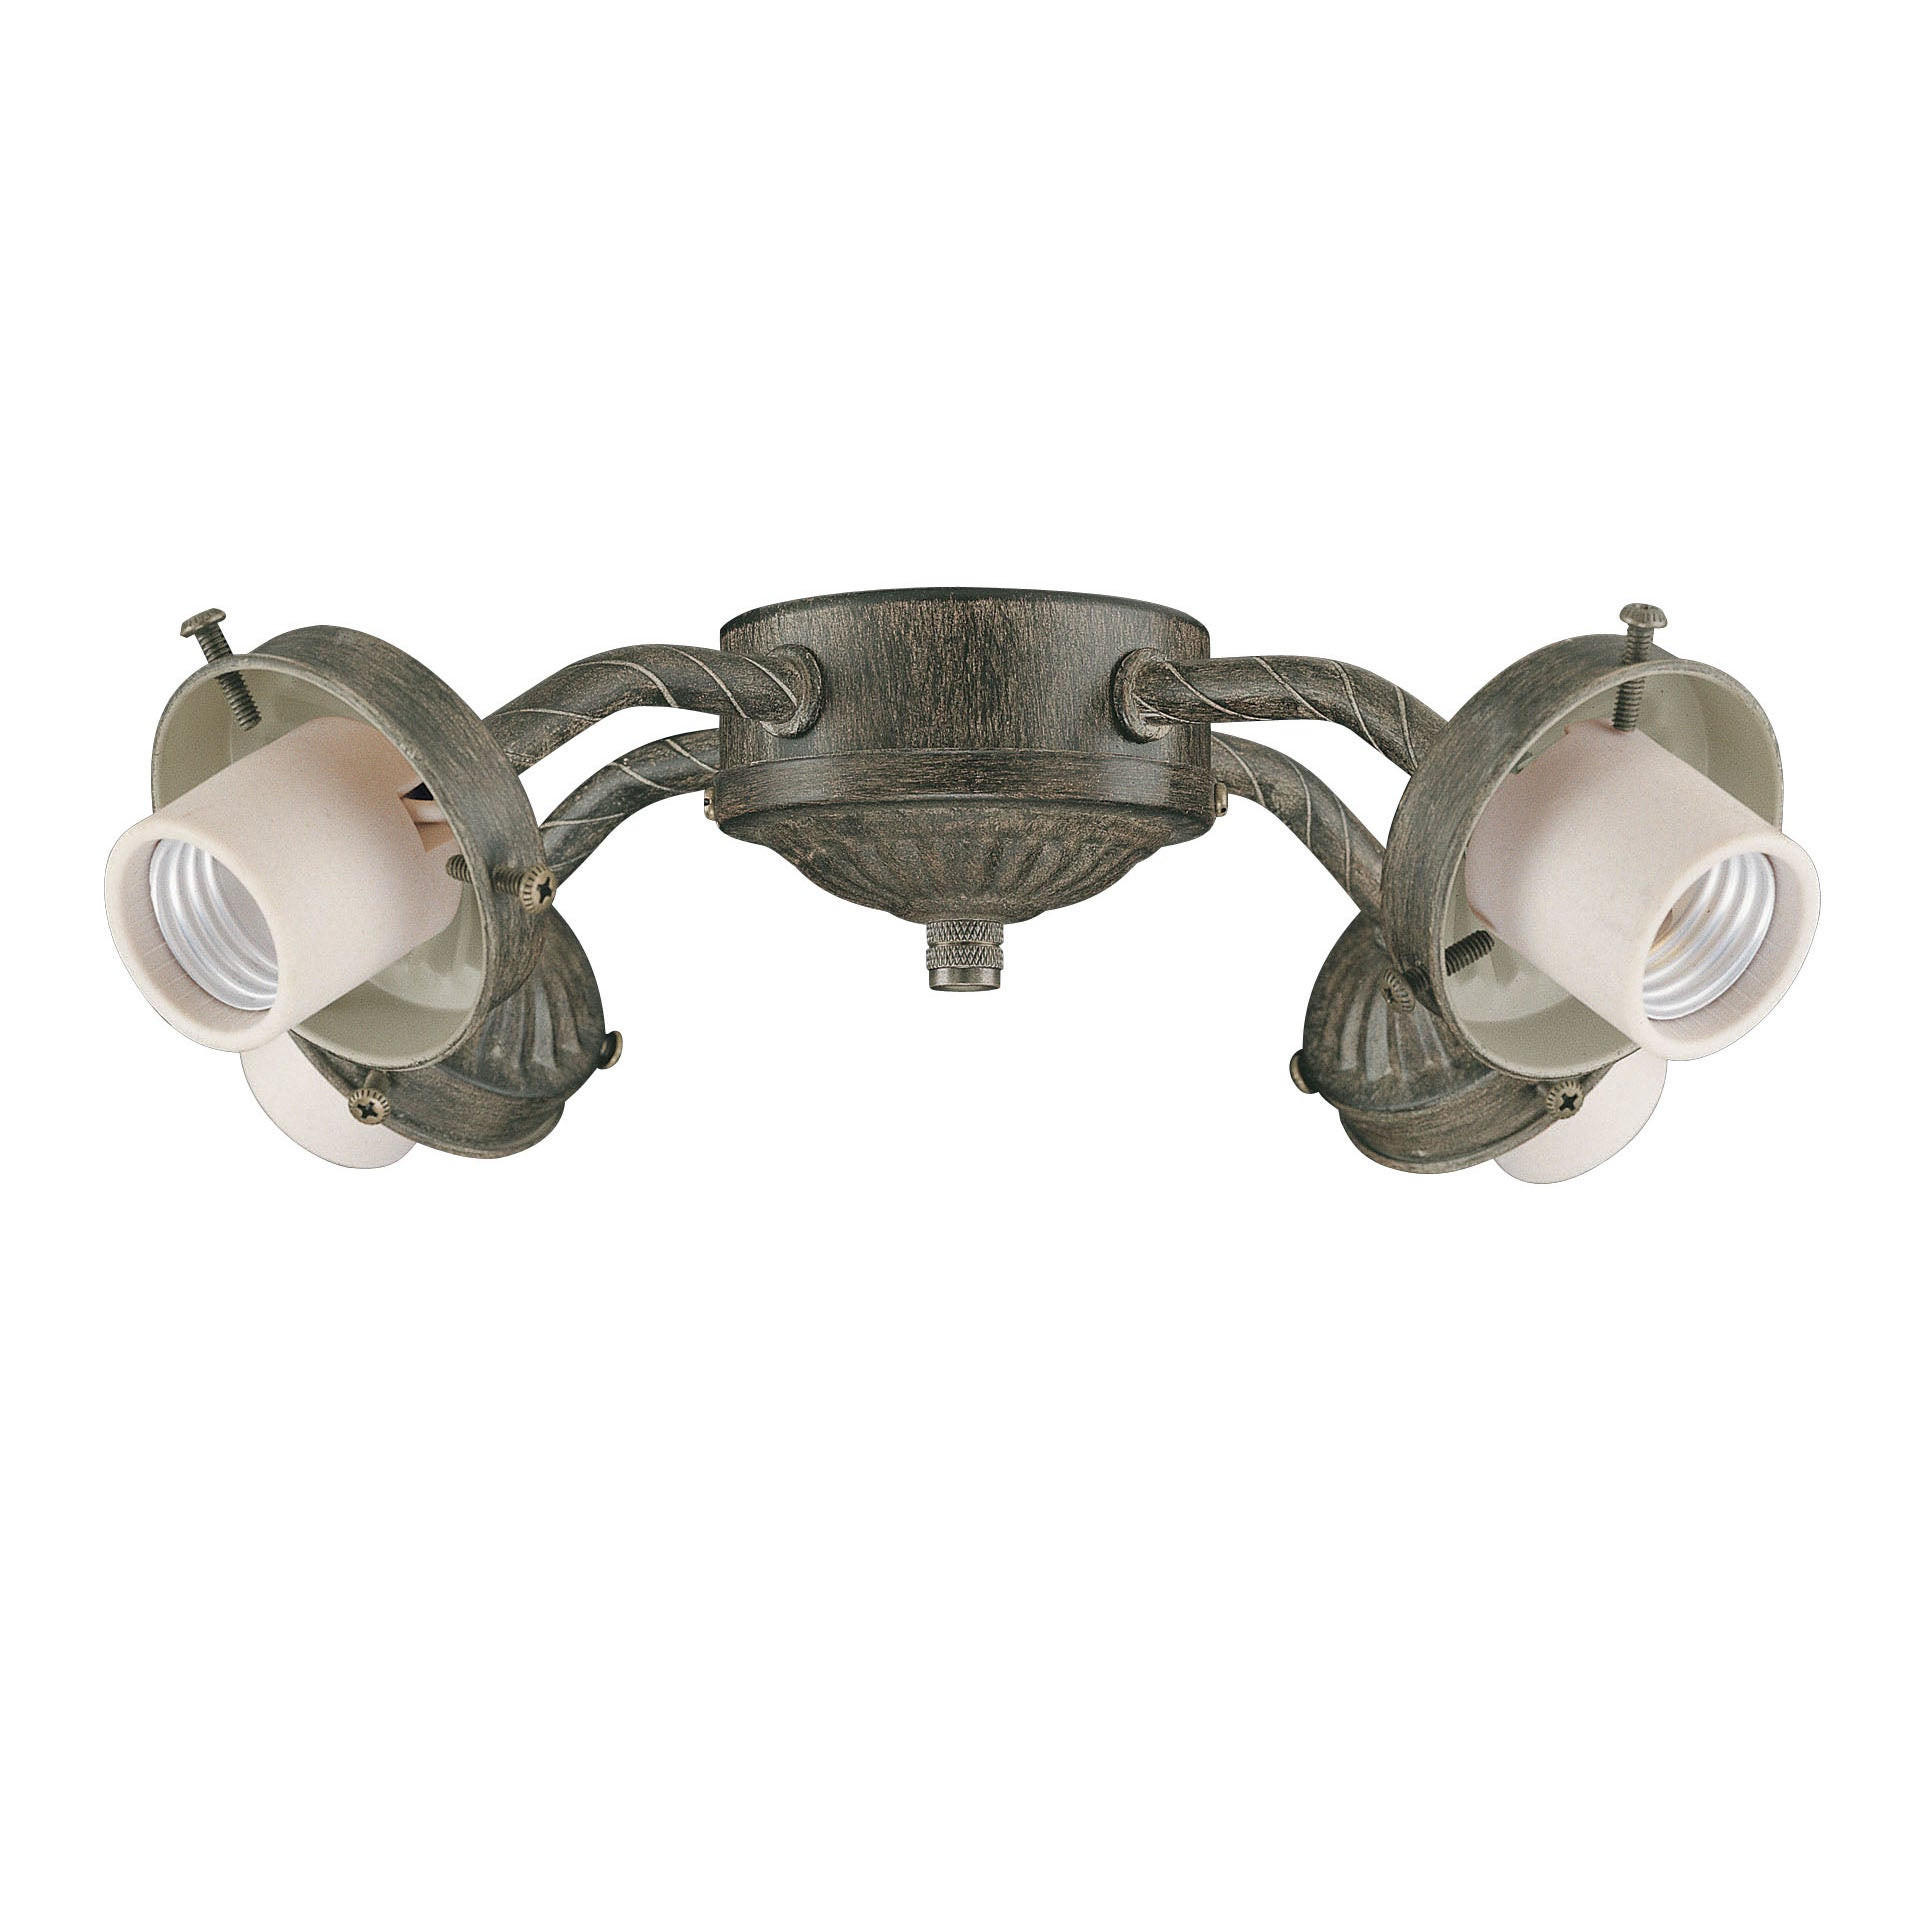 Four Light Aged Pecan Ceiling Fan Light Kit